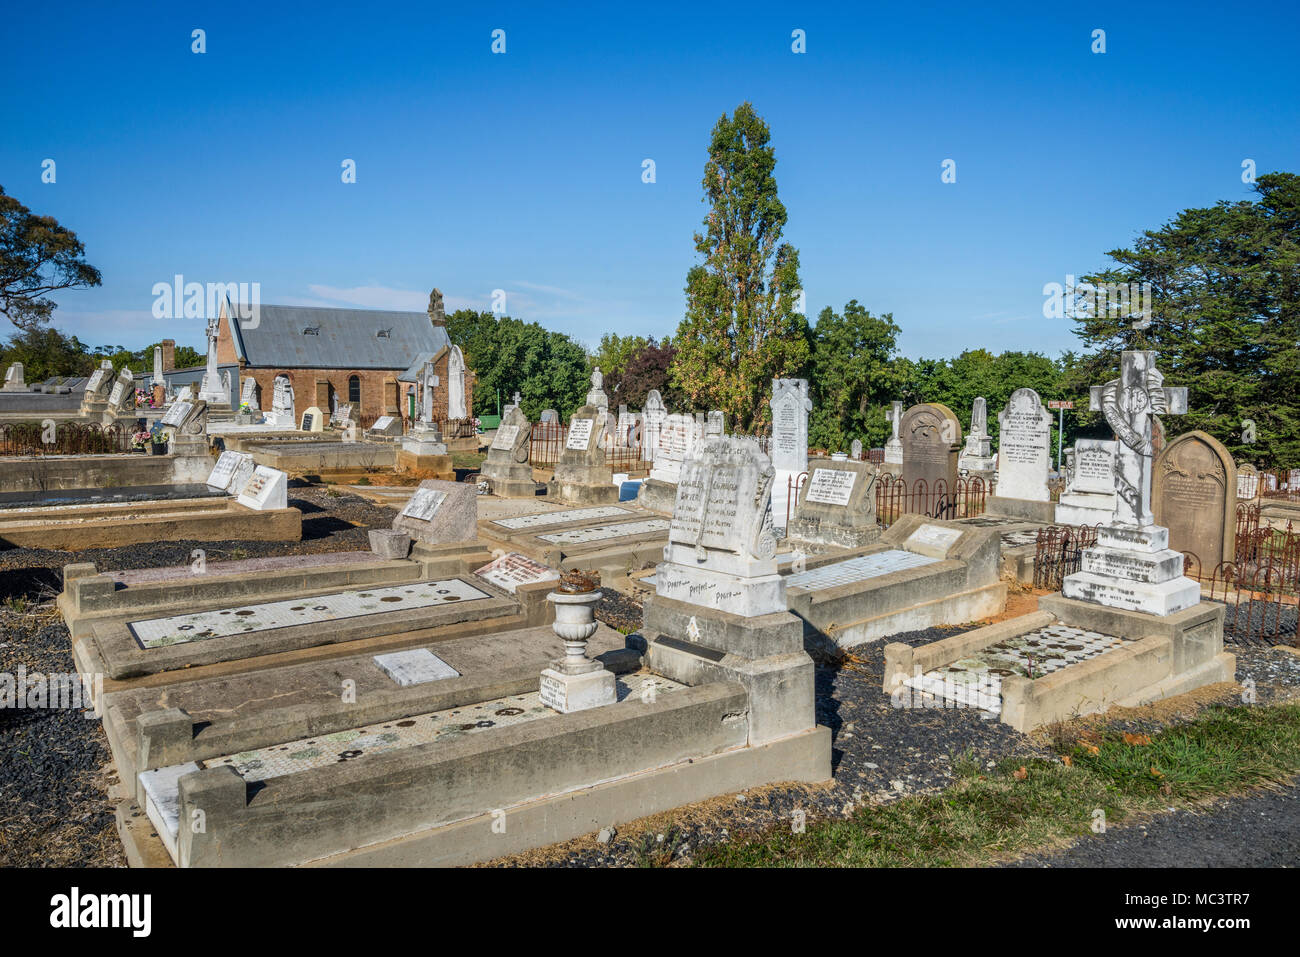 Millthorpe cemetary with historic gravesites of pioneer families of the region, Millthorpe, Central West New South Wales, Australia - Stock Image